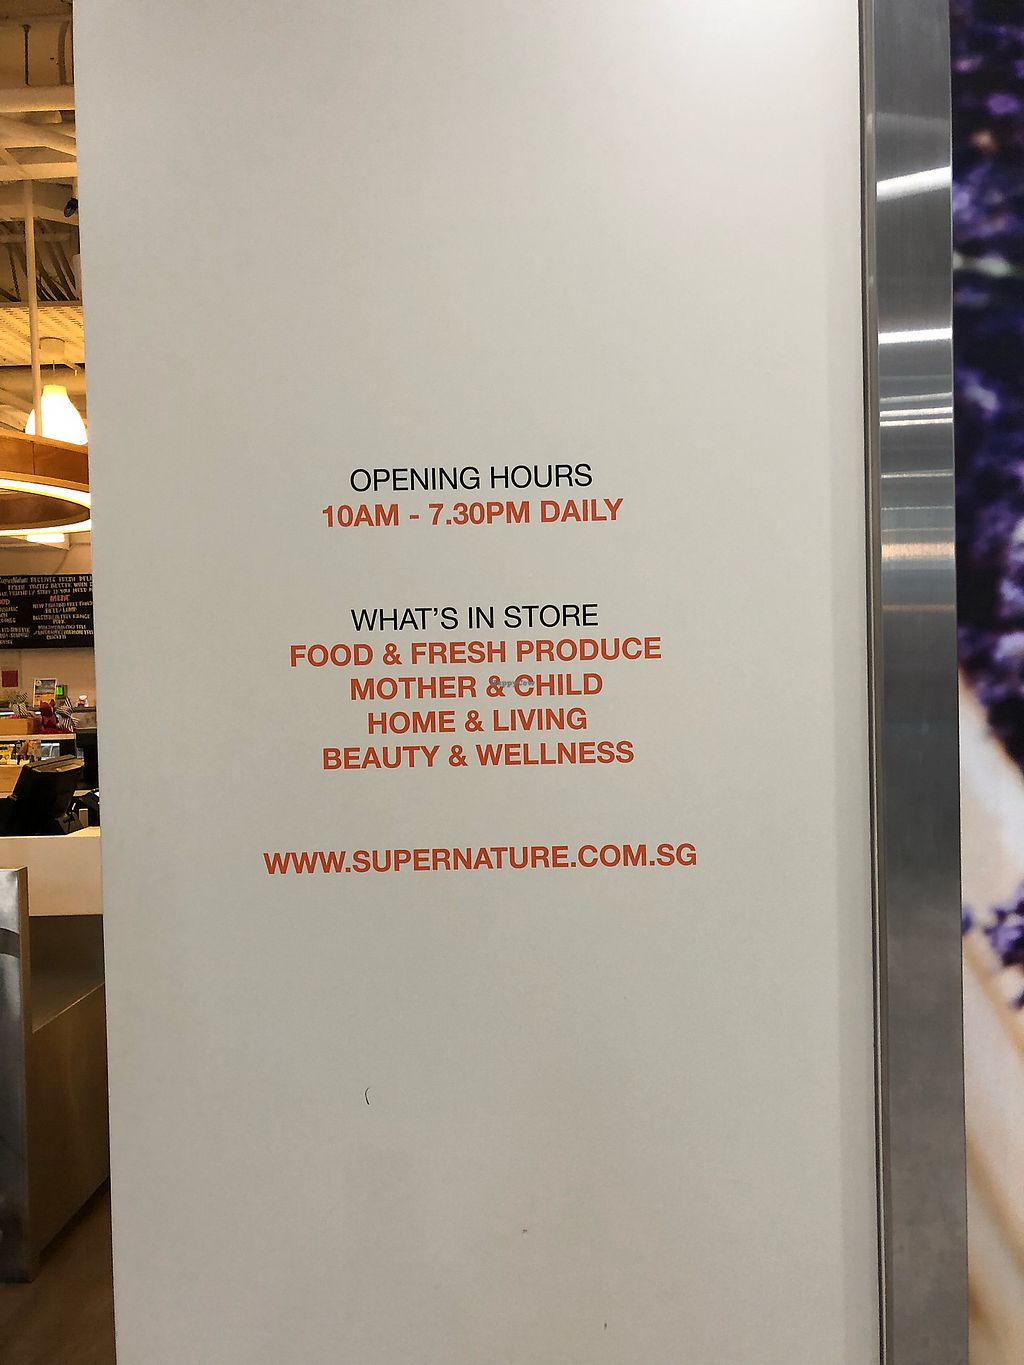 "Photo of SuperNature  by <a href=""/members/profile/Poised_with_Plants"">Poised_with_Plants</a> <br/>Opening hours <br/> March 29, 2018  - <a href='/contact/abuse/image/111859/377657'>Report</a>"